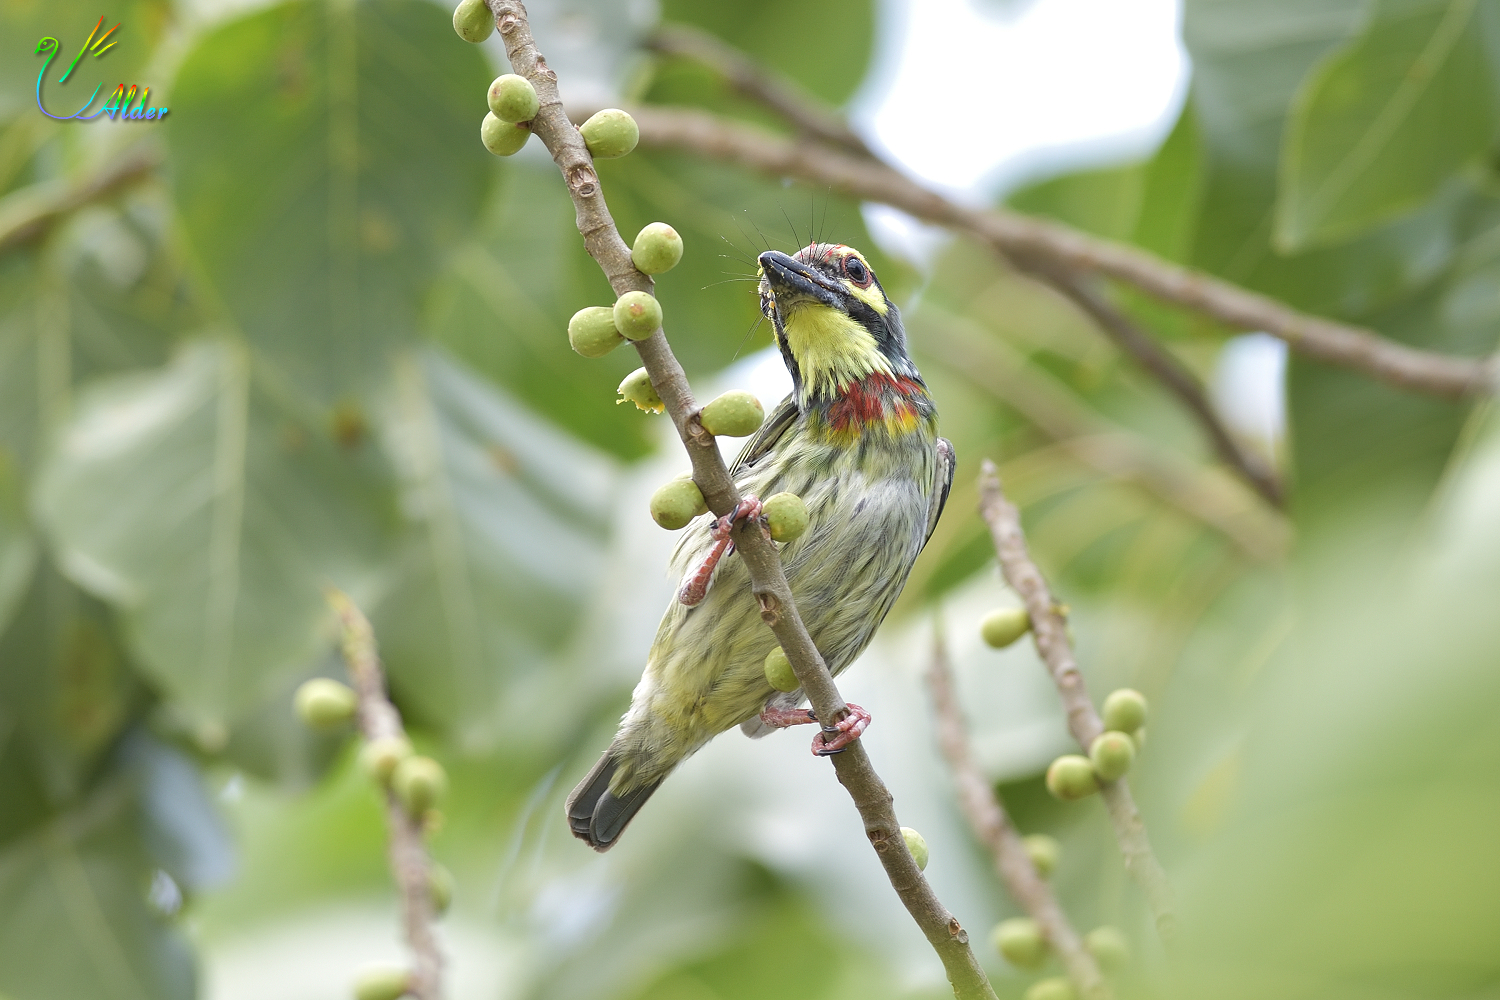 Coppersmith_Barbet_6776